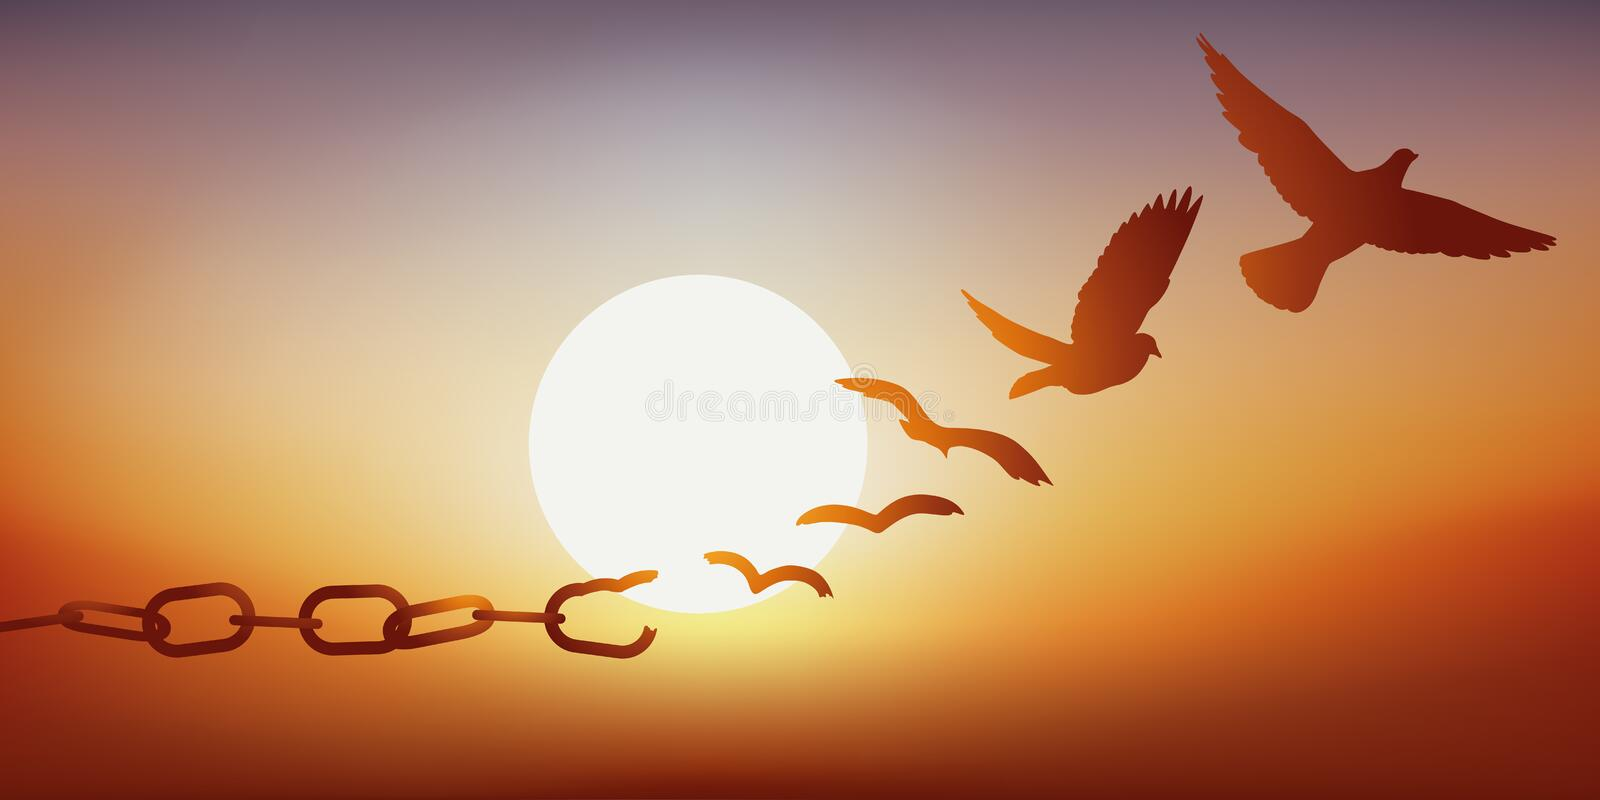 Concept of liberation with a dove escaping by breaking its chains, symbol of prison. Concept of liberty found, with chains breaking and turning into a dove stock illustration